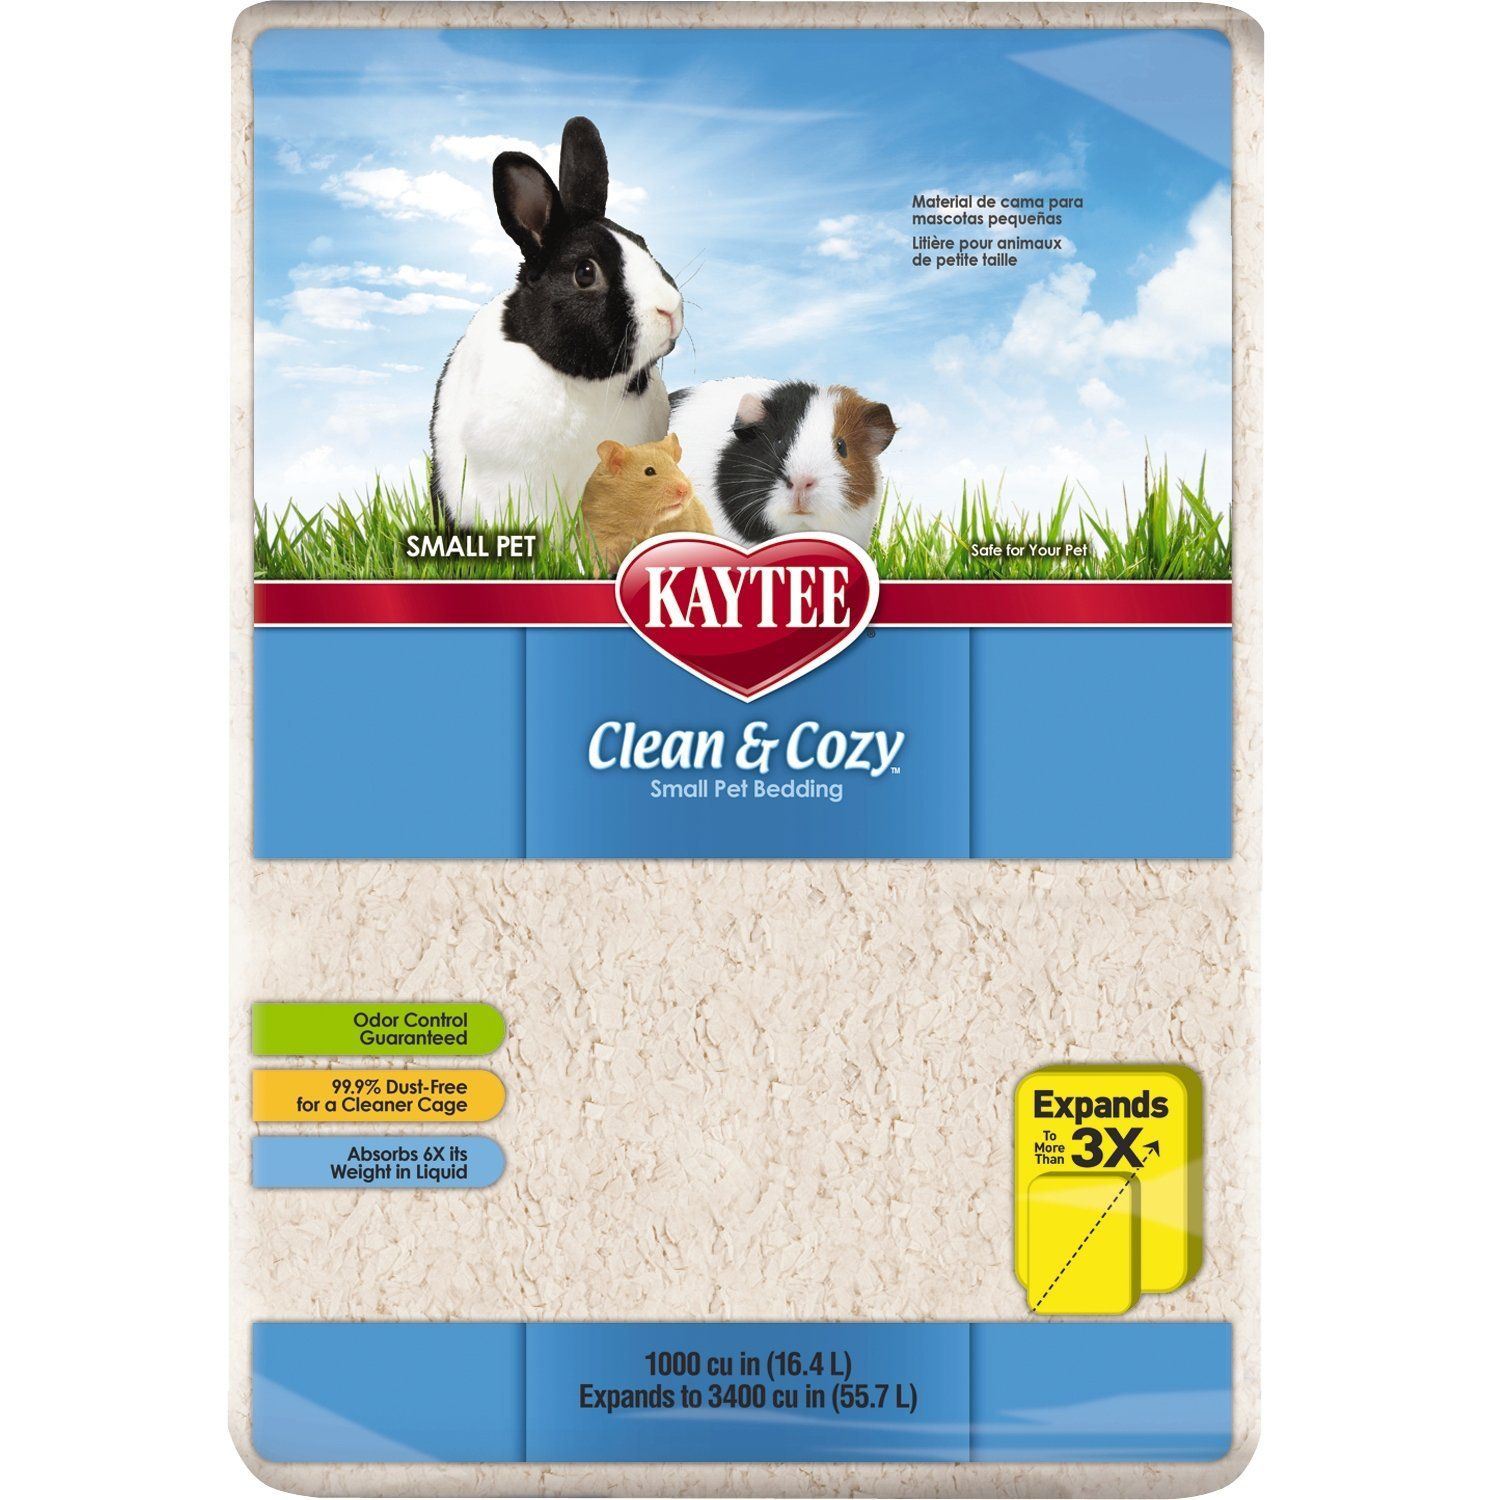 Kaytee Clean & Cozy Bedding, 1000 Cubic Inch